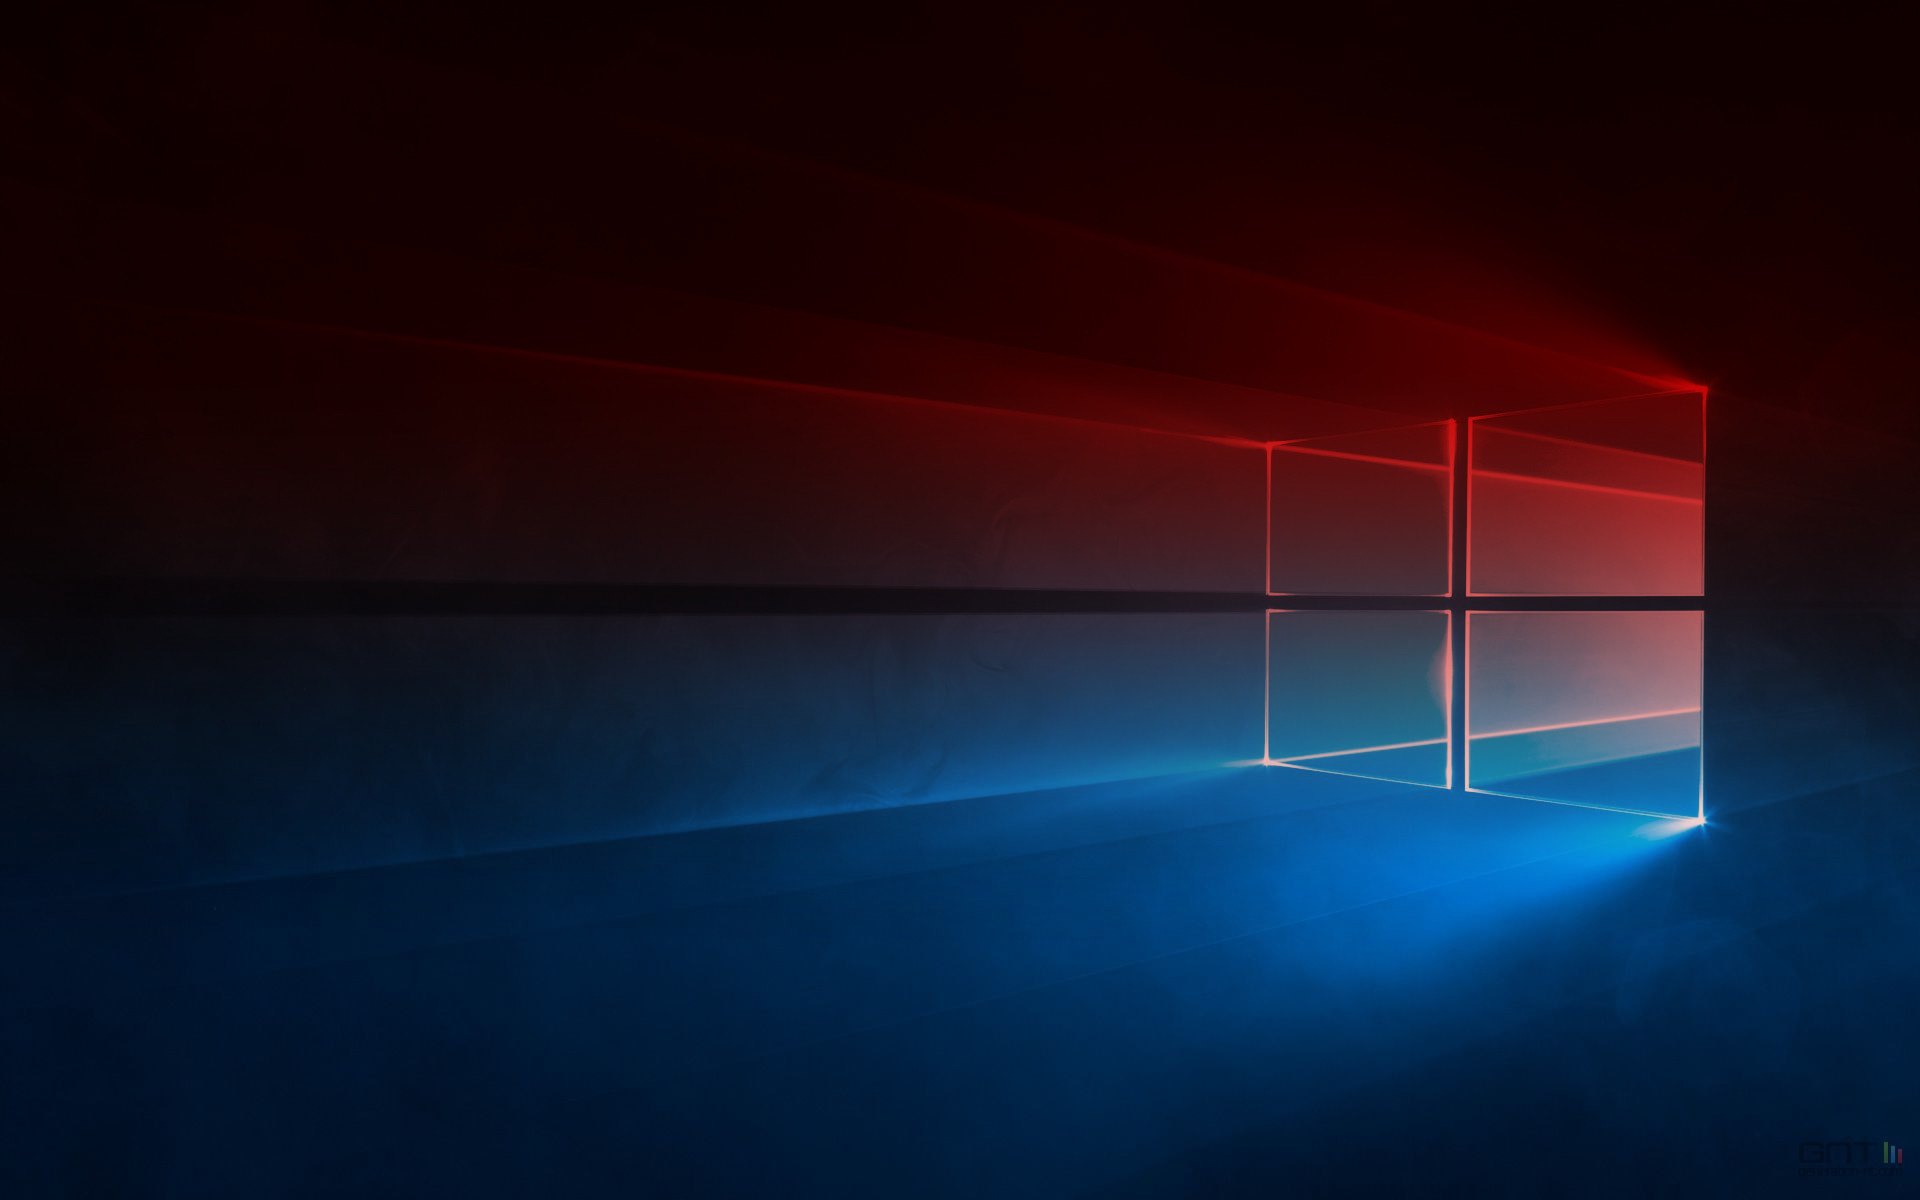 Hd Wallpapers Android Lock Screen Windows 10 Futuristic Wallpaper 70 Images